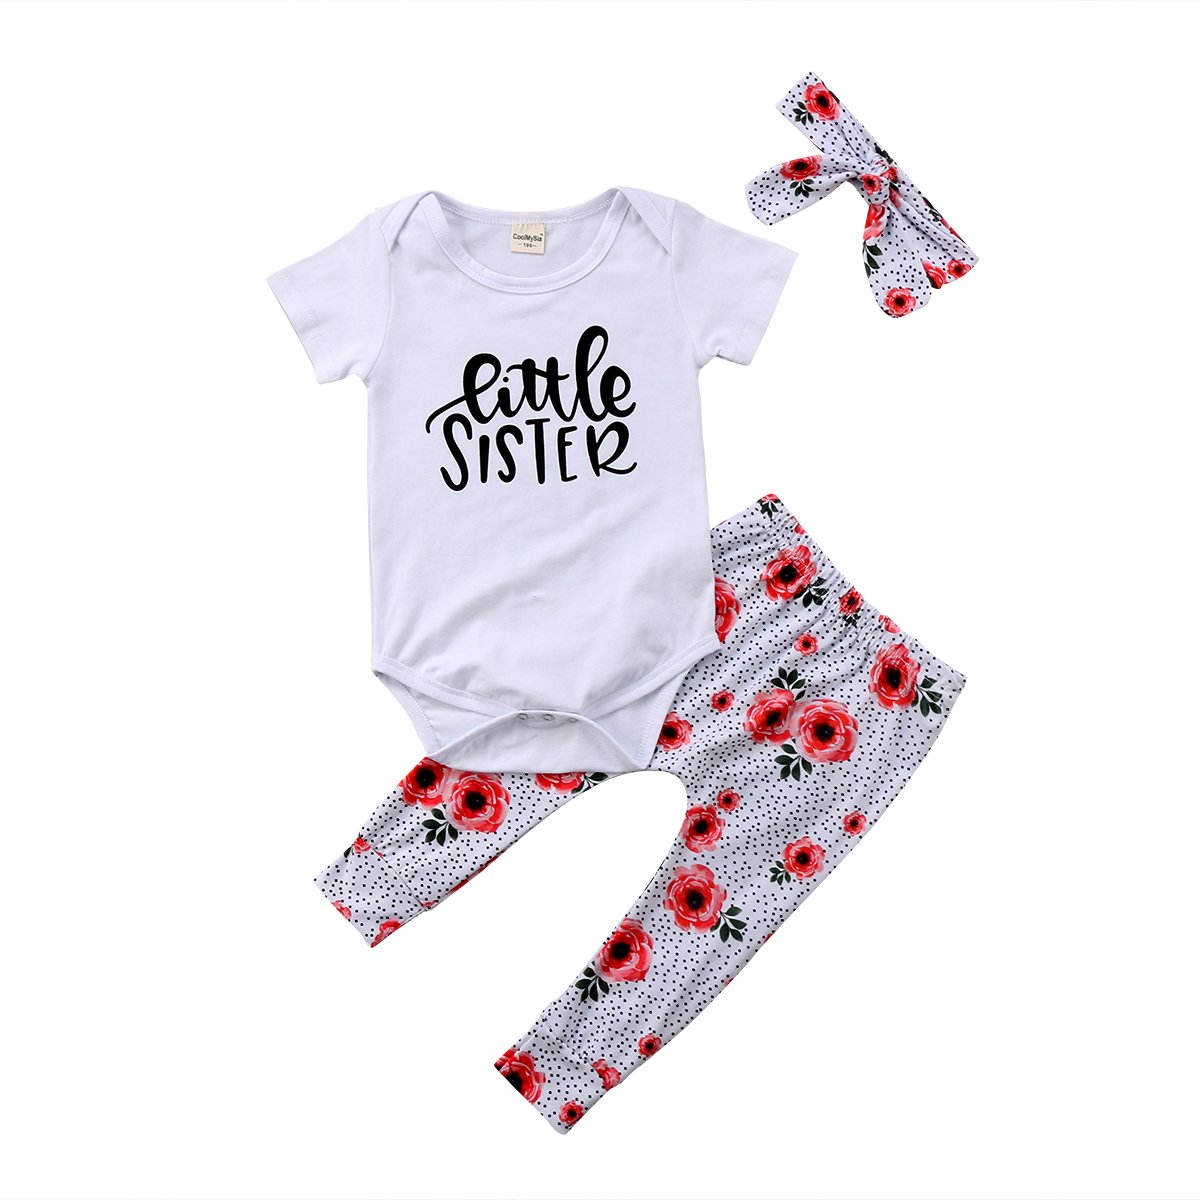 76c2487d76da4 KIDSA 0-24M Little Sister Baby Girl Short Sleeve Bodysuit Romper + Floral  Pants + Headband 3Pcs Outfits Sets